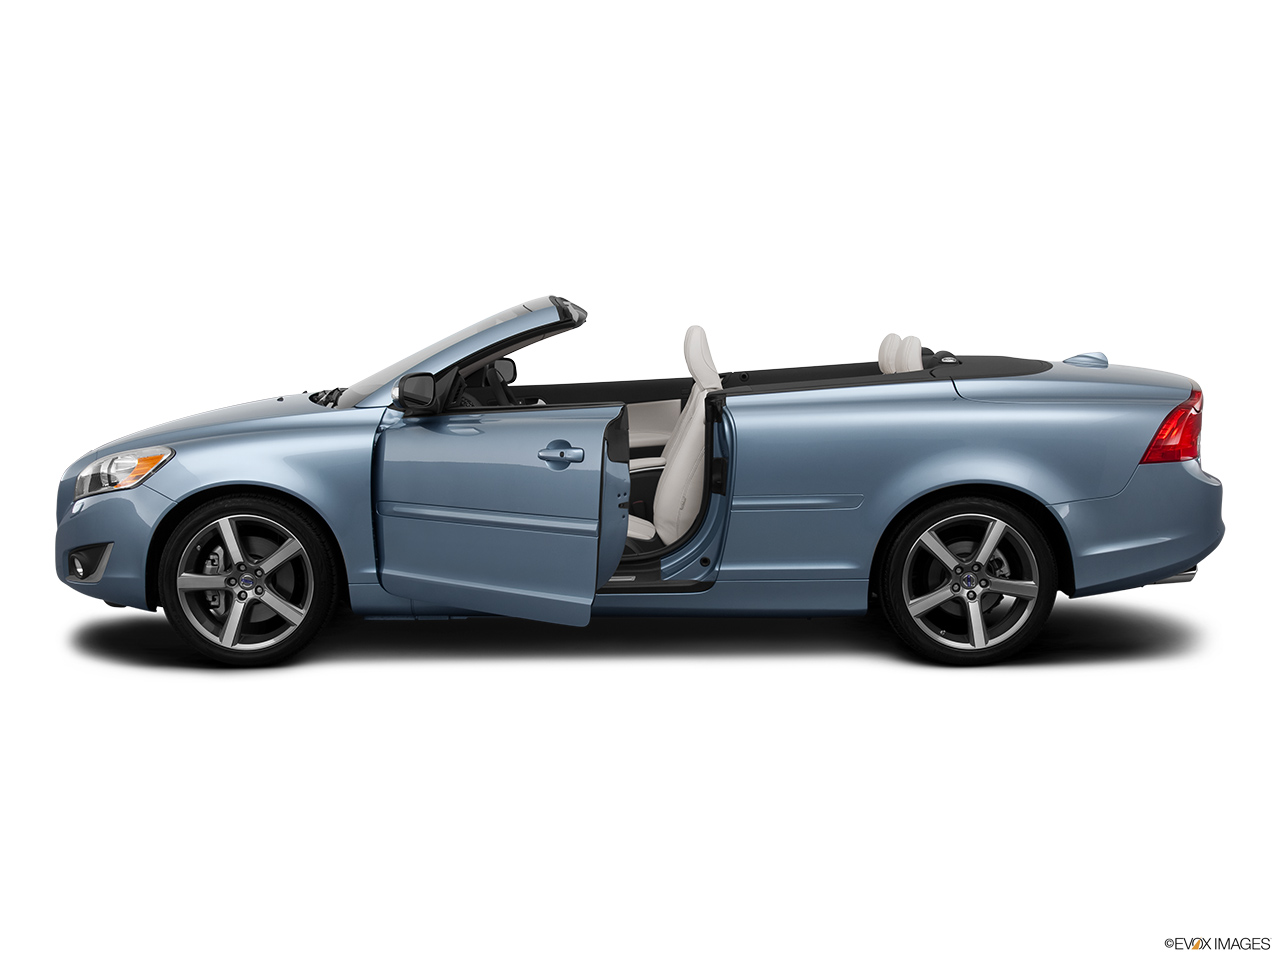 2013 Volvo C70 T5 Platinum Driver's side profile with drivers side door open.